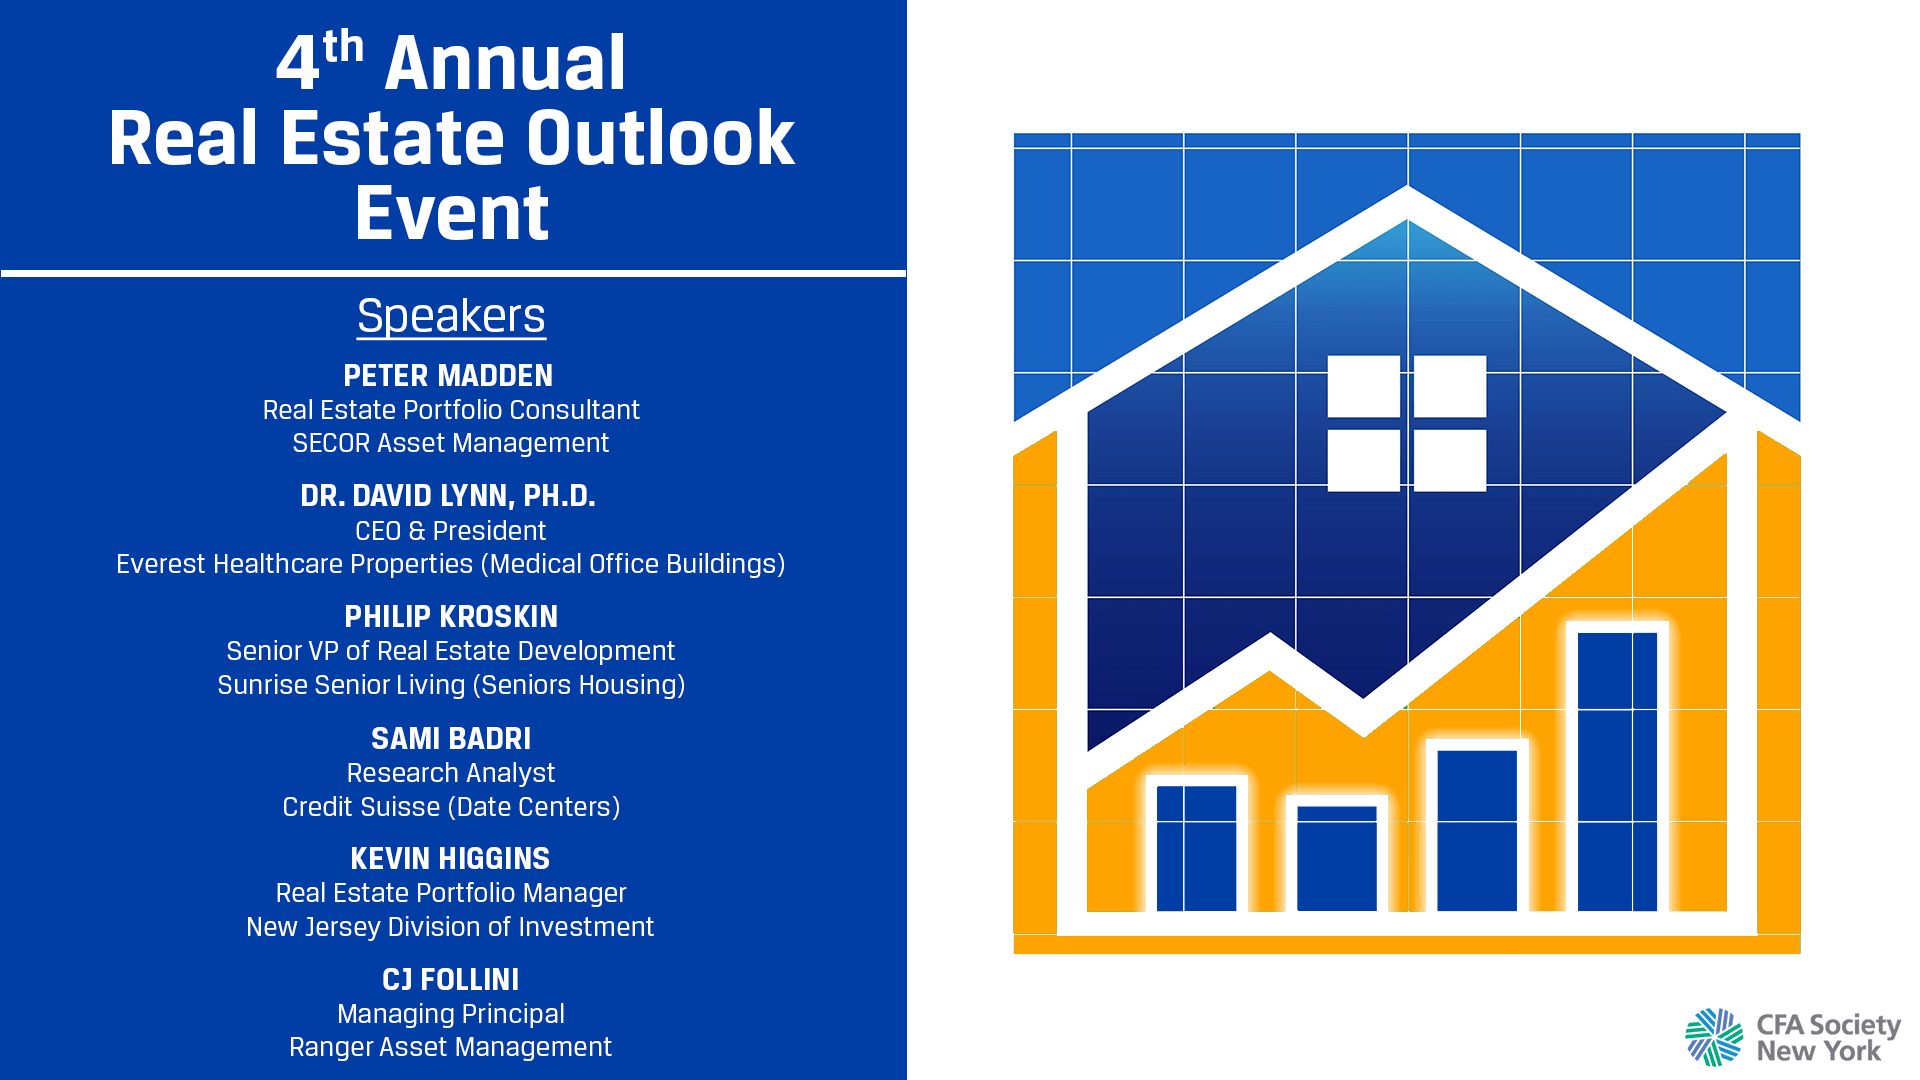 4th Annual Real Estate Outlook Event Cfa Society New York